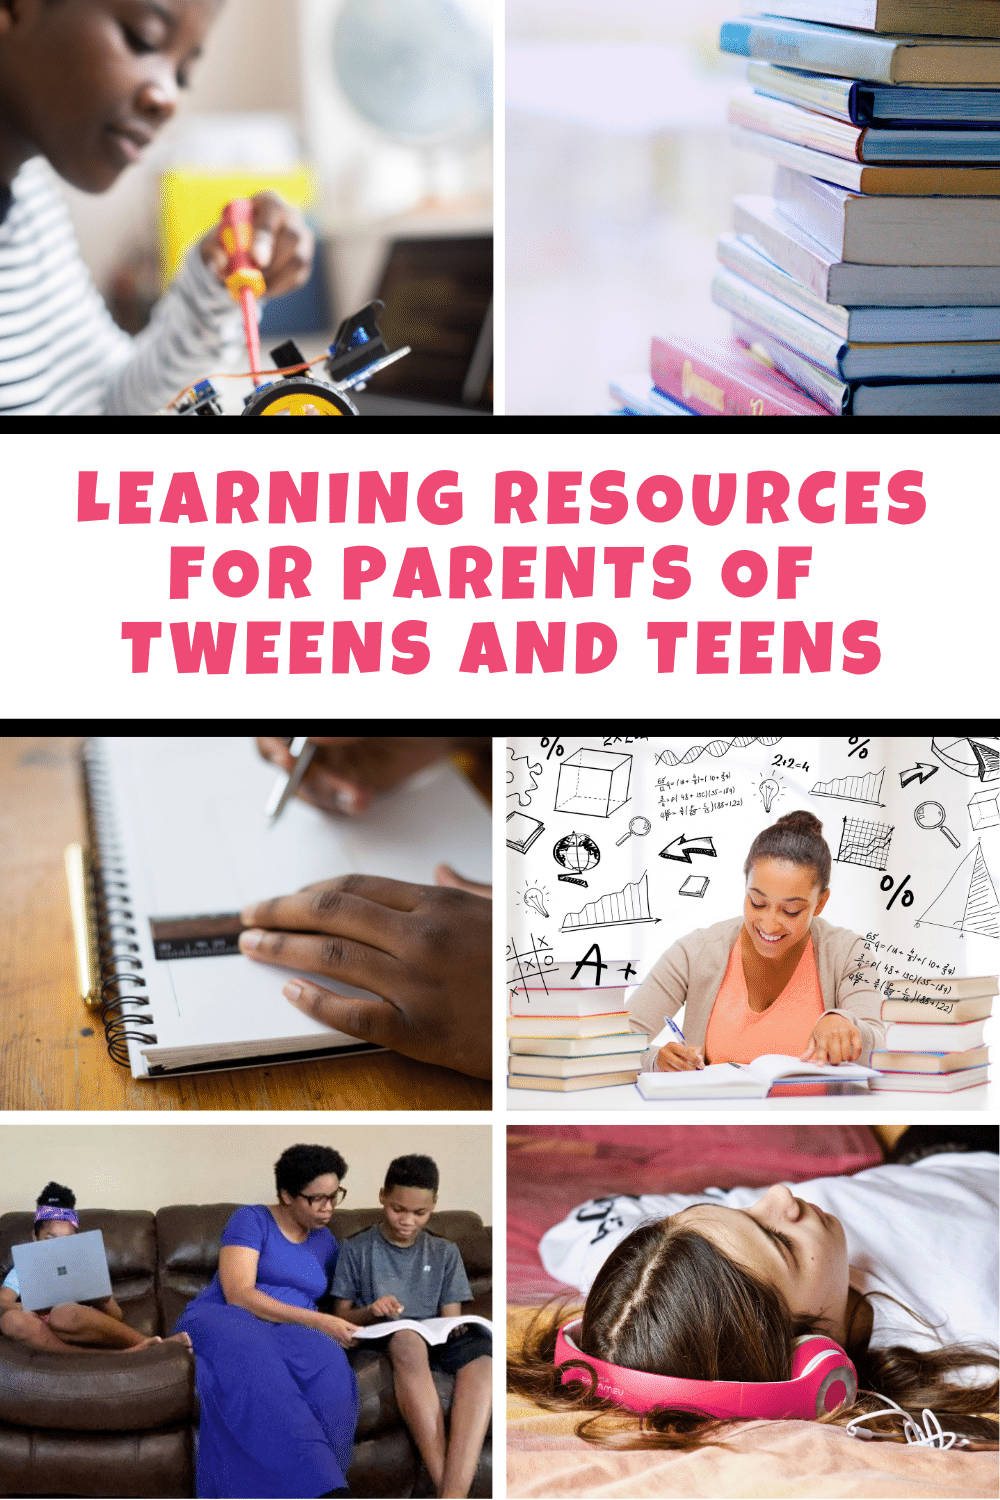 A comprehensive list of learning resources for parents of tweens and teens to reference for fun educational activities at home.